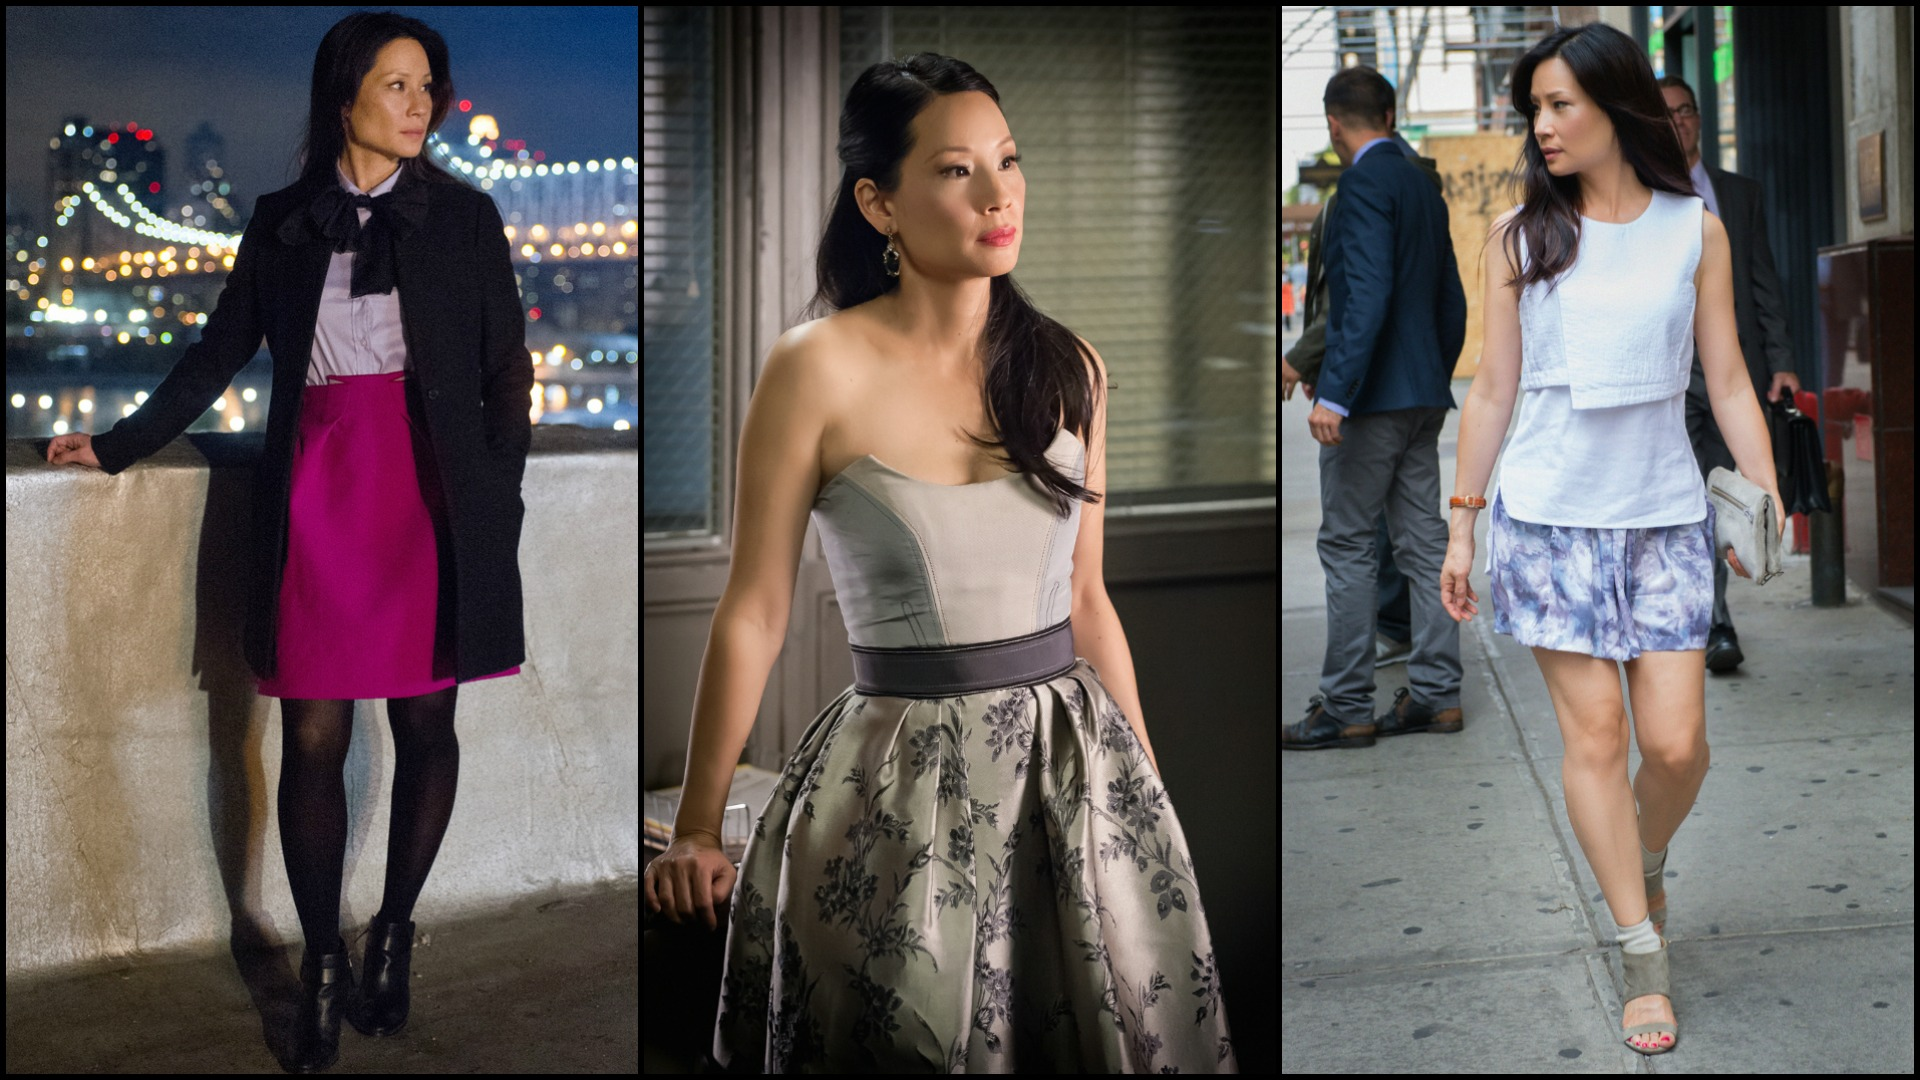 Take a look inside Elementary's fashion department